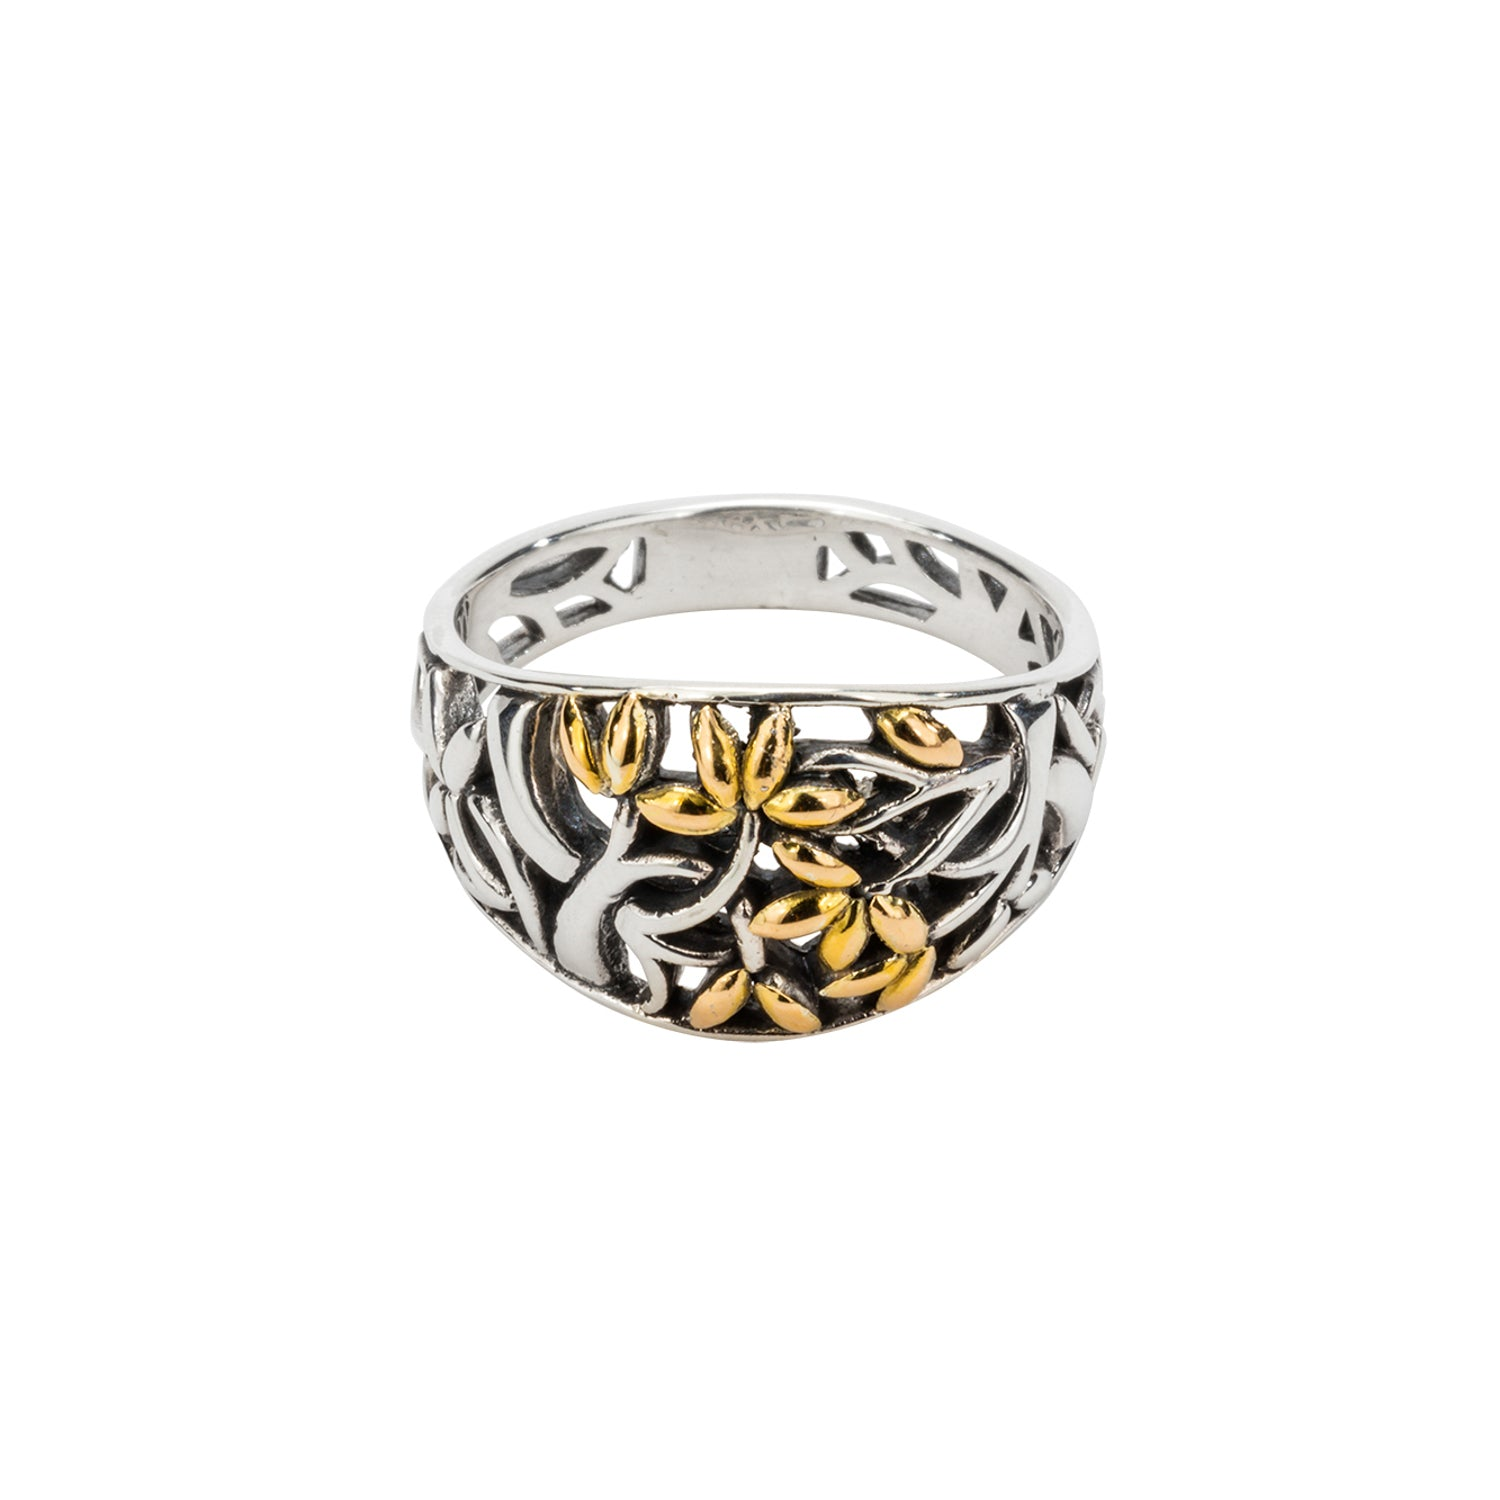 Ring Bands 18k Tree of Life Ring (Tapered) from welch and company jewelers near syracuse ny